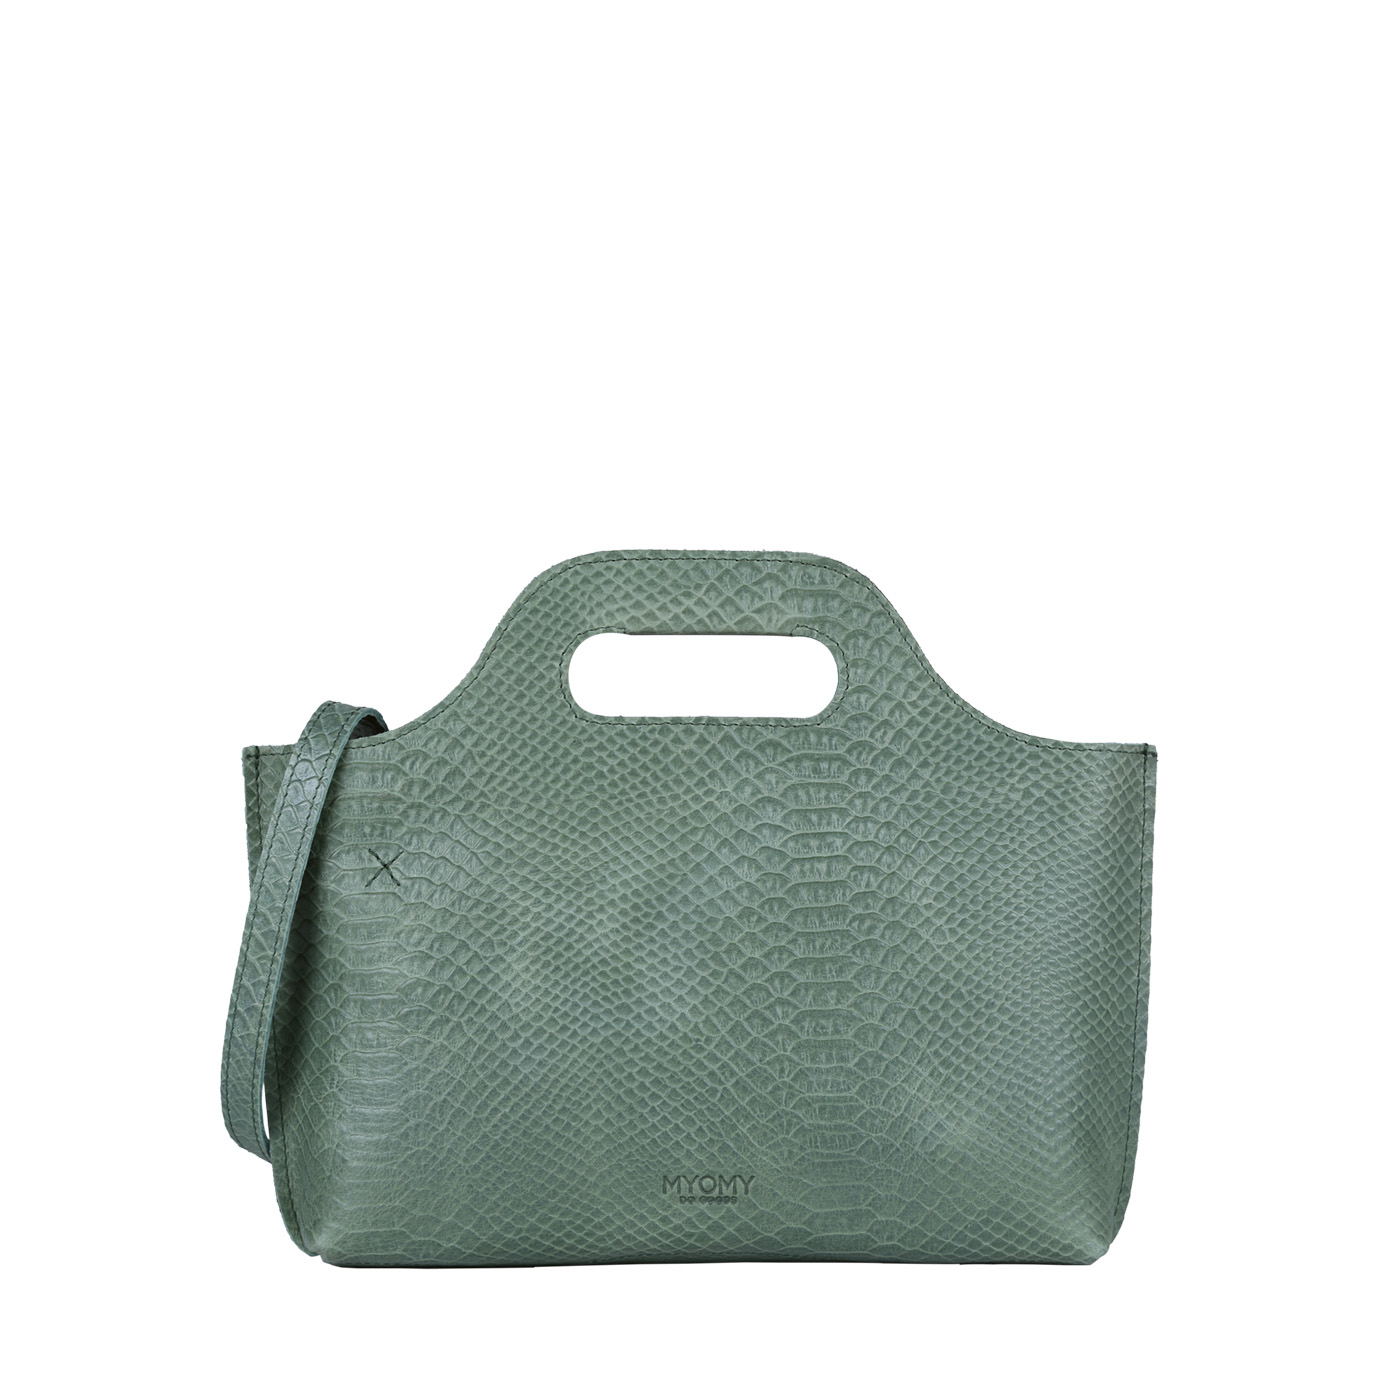 MY CARRY BAG Mini - anaconda sea green